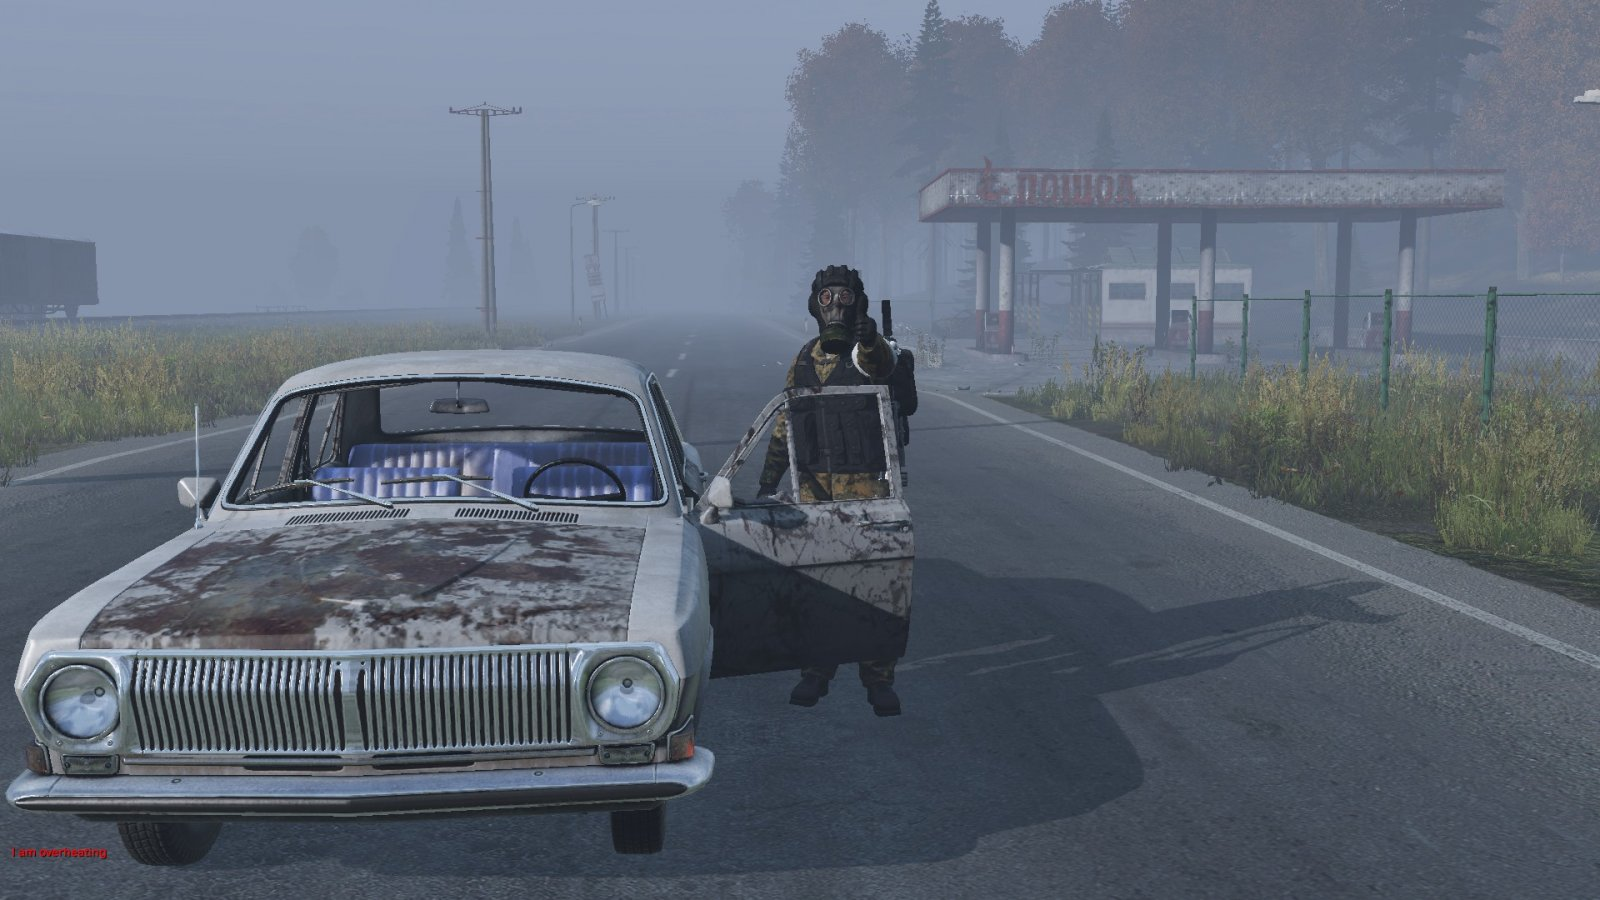 Top lad. Gave me a lift from Novo to cherno (The Pagans V2)